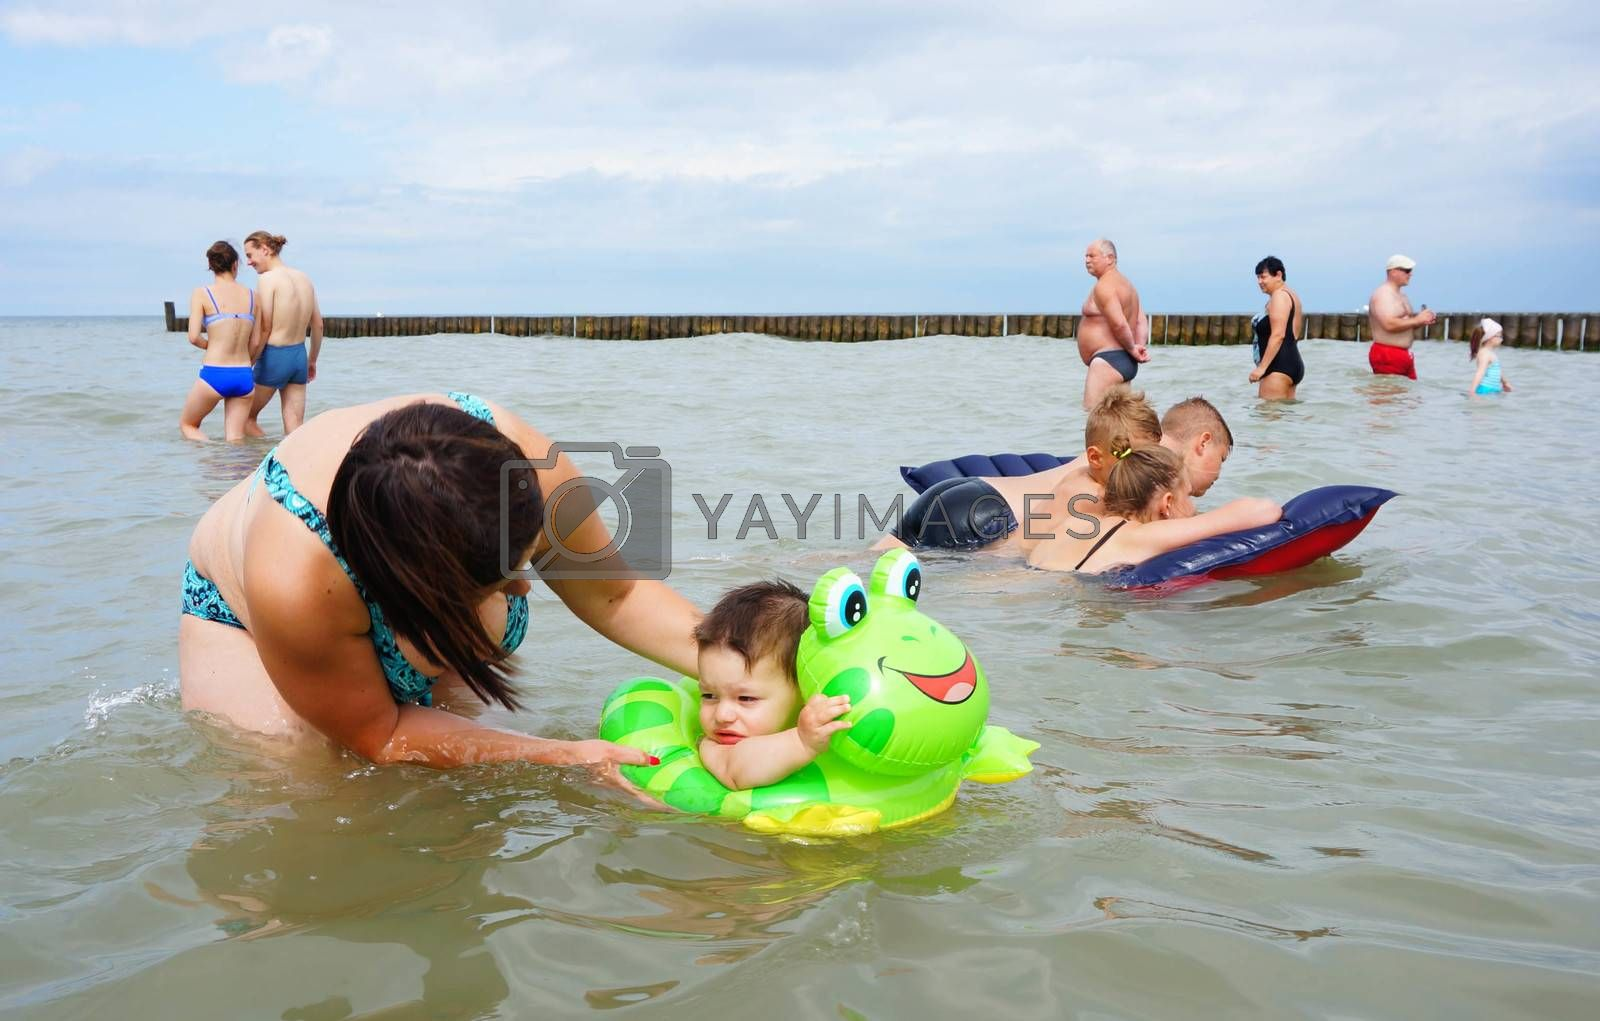 SIANOZETY, POLAND - JULY 21, 2015: Adults and children playing in the water at a beach